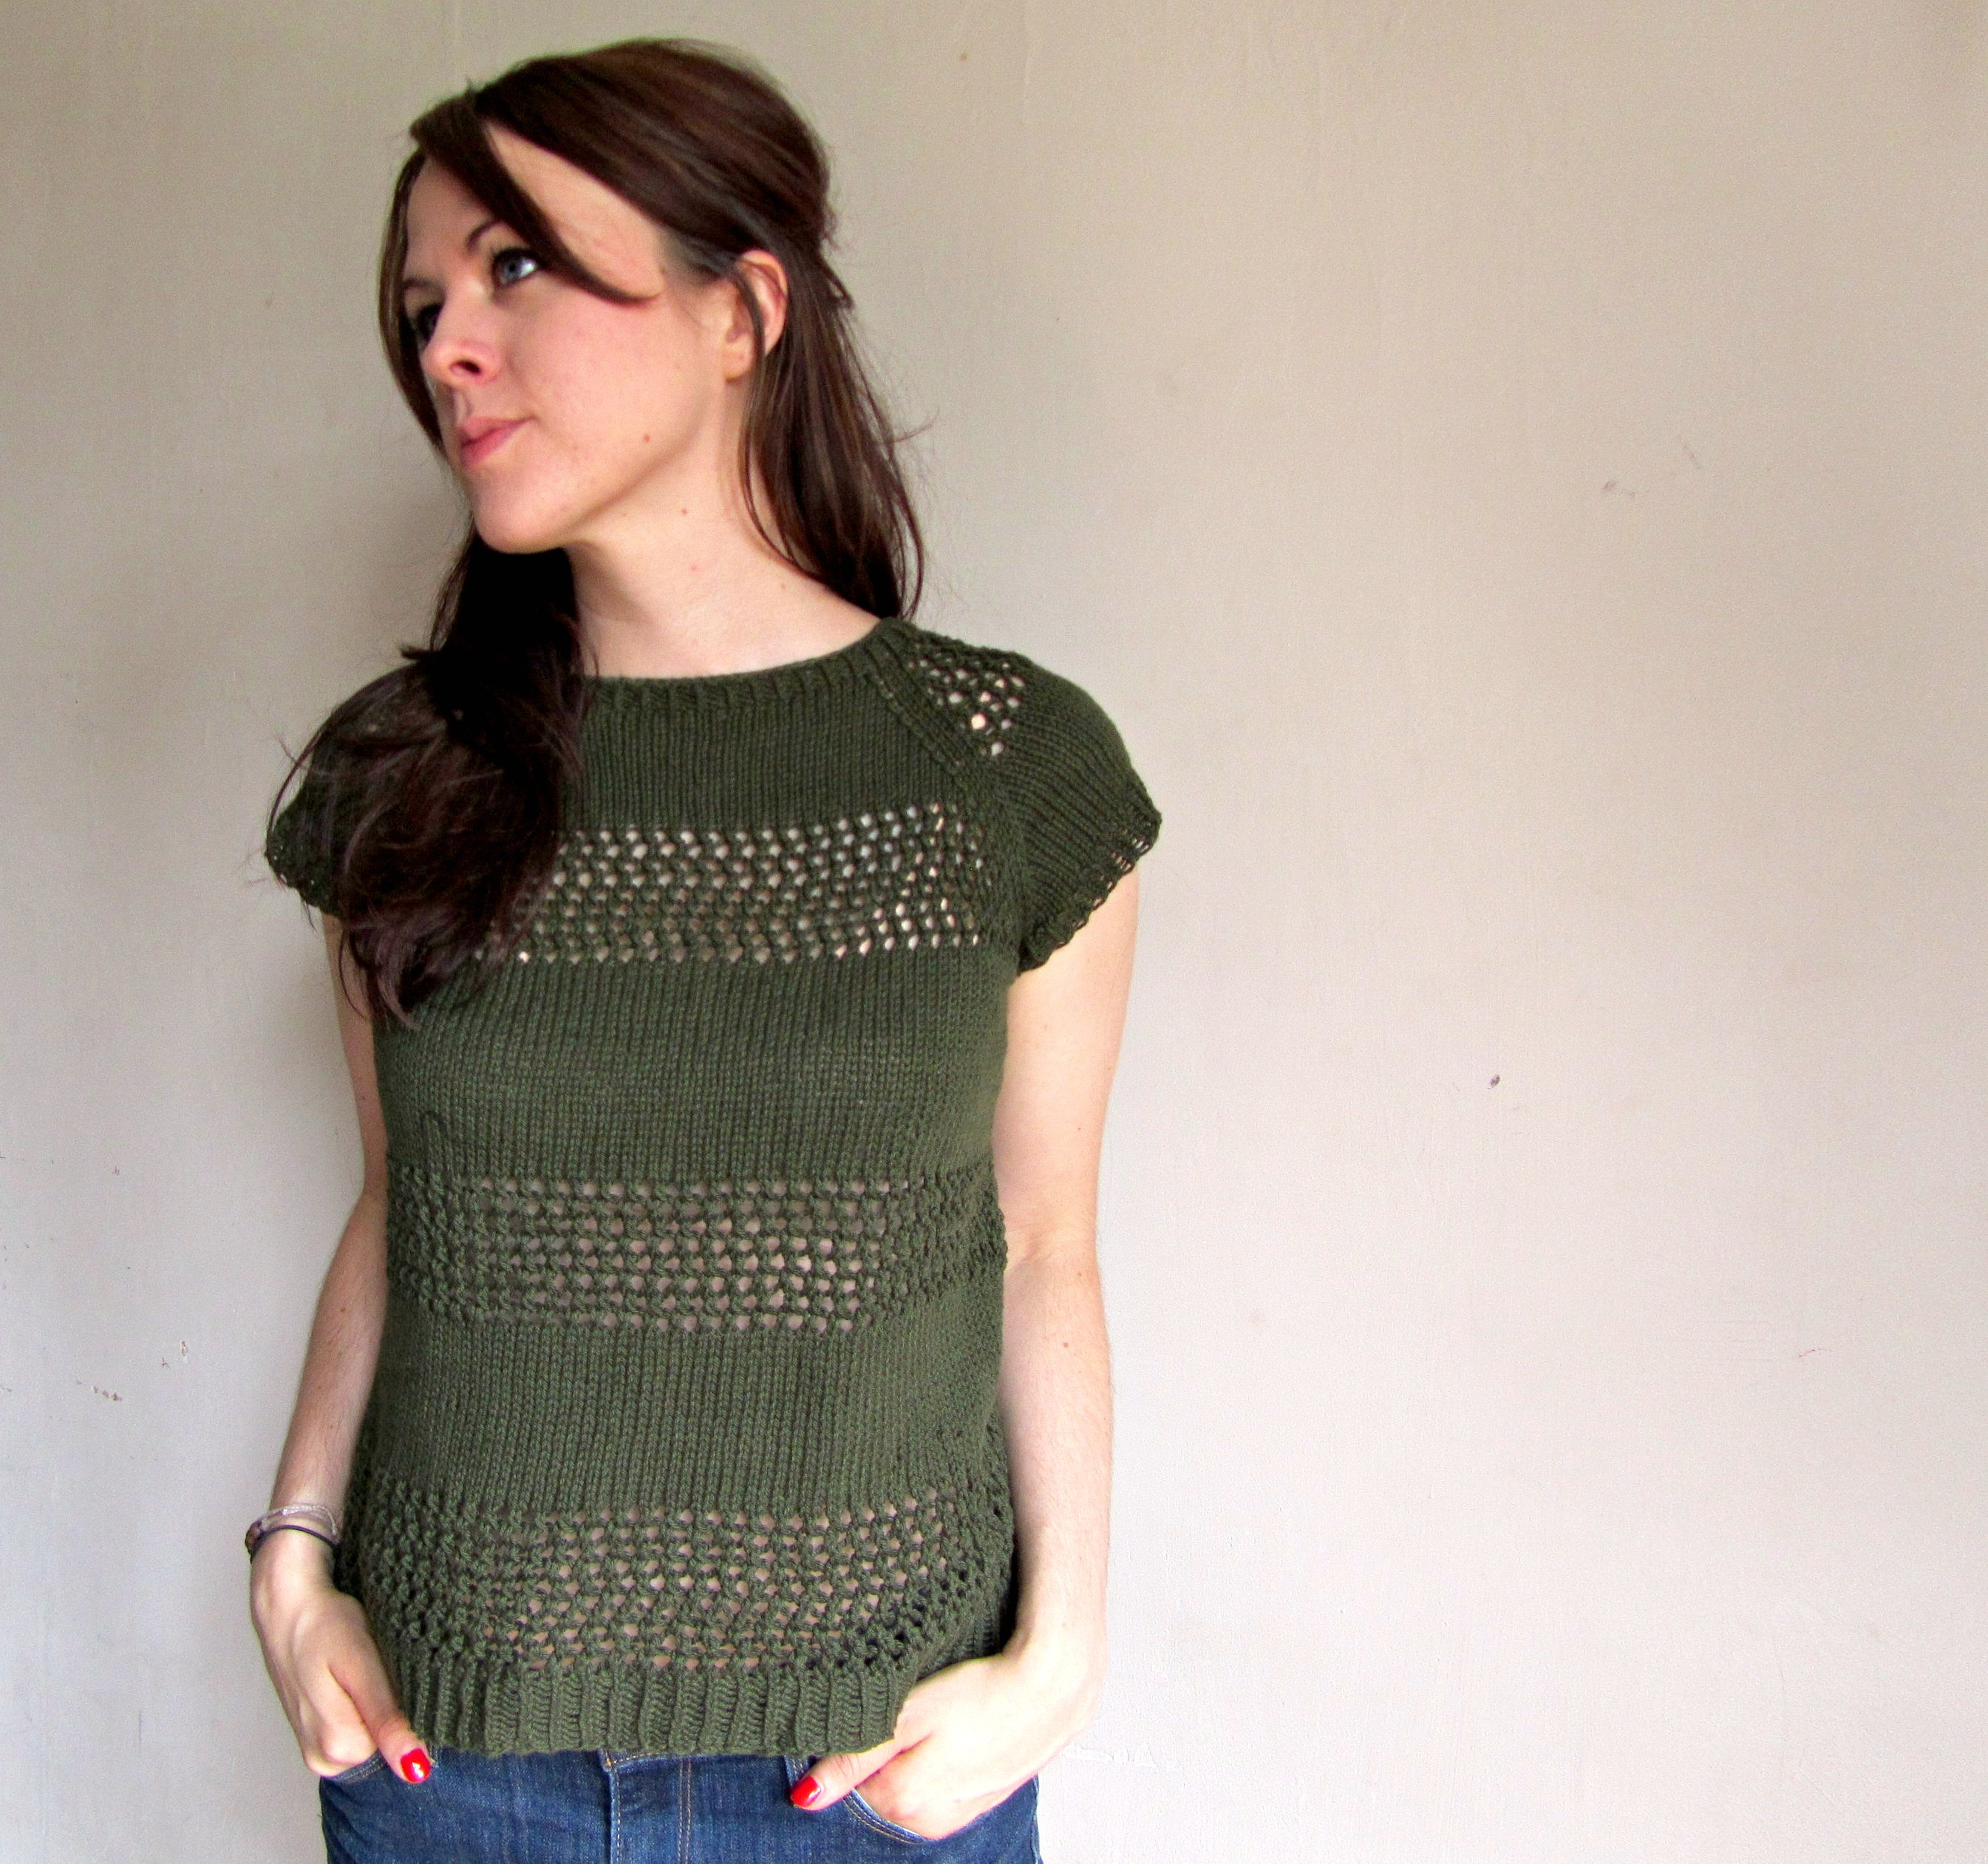 Summer Sweaters To Knit - English Sweater Vest